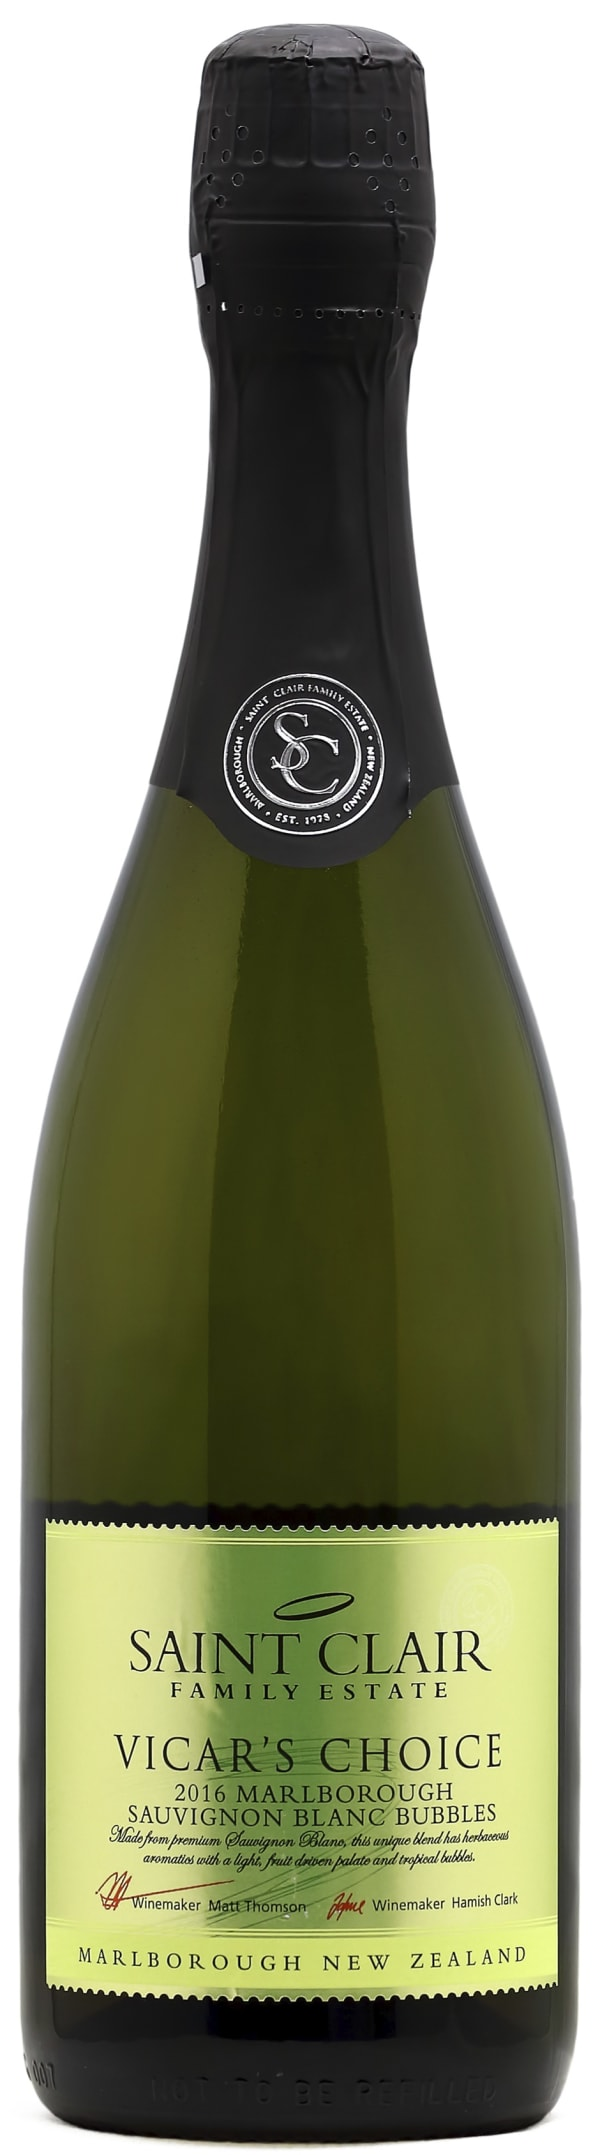 Saint Clair Vicar's Choice Sauvignon Blanc Bubbles Brut 2016